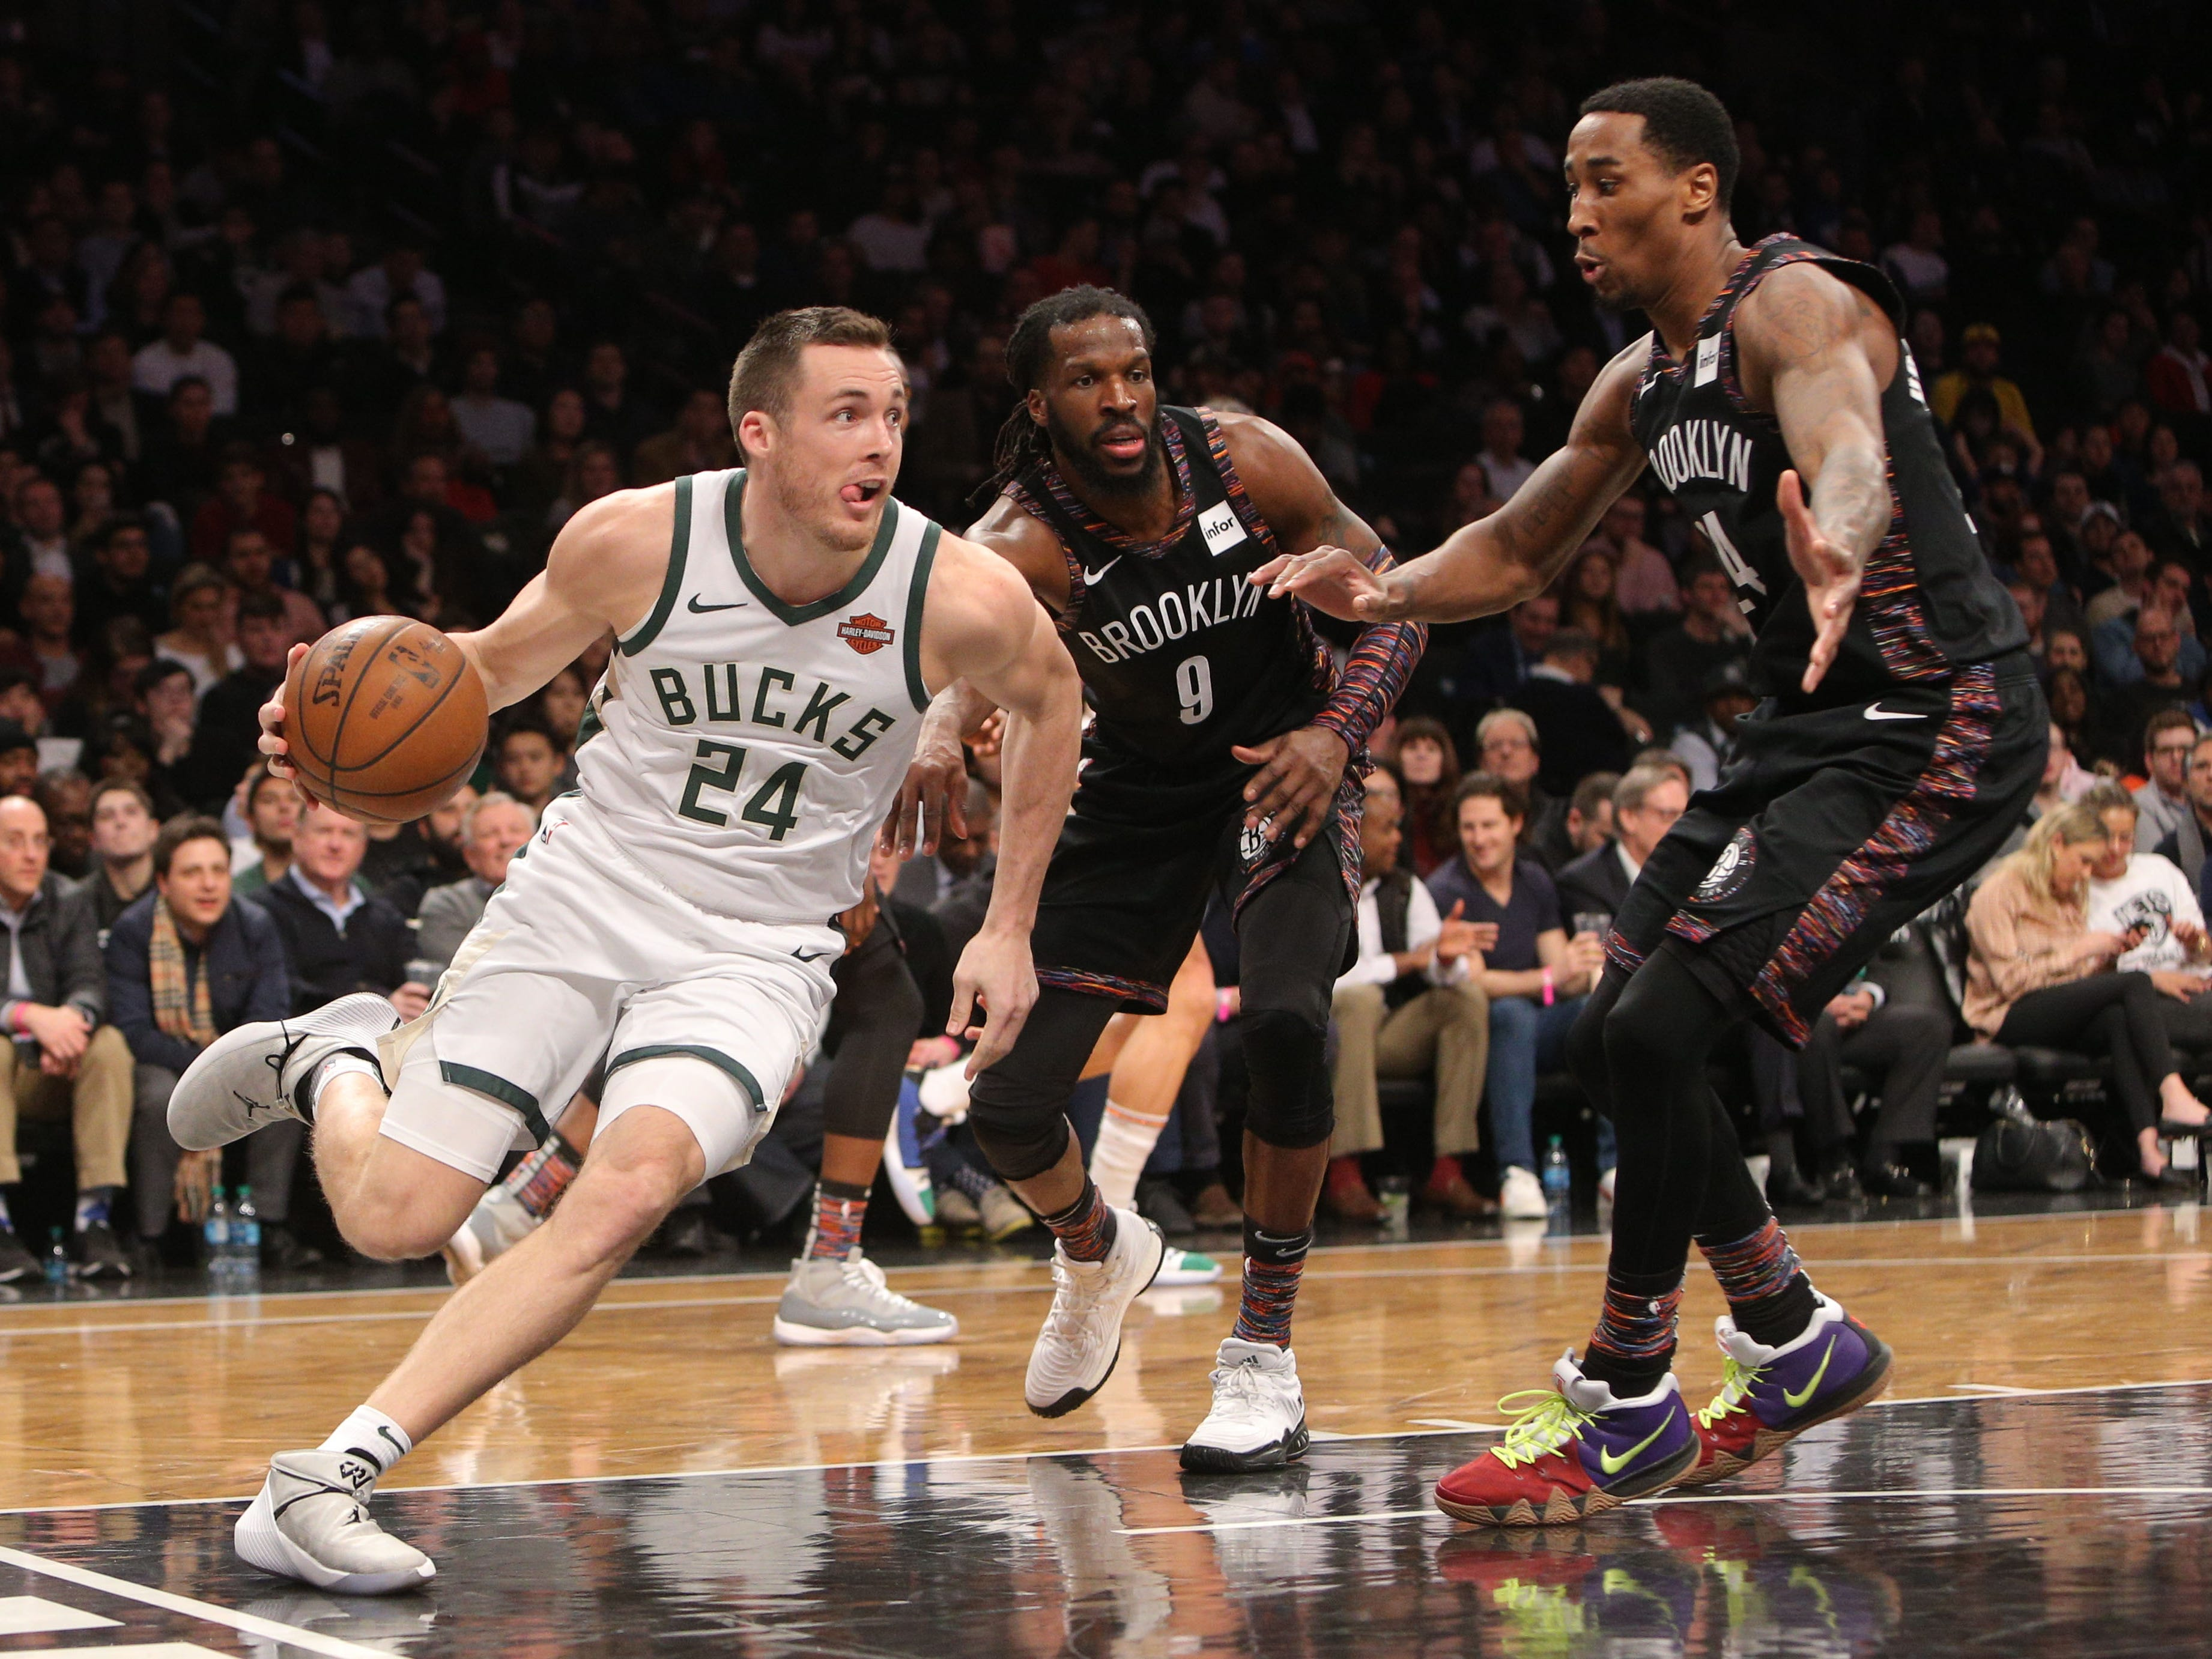 Bucks guard Pat Connaughton drives past DeMarre Carroll (center) and Rondae Hollis-Jefferson of the Nets along the baseline during the third quarter Monday.